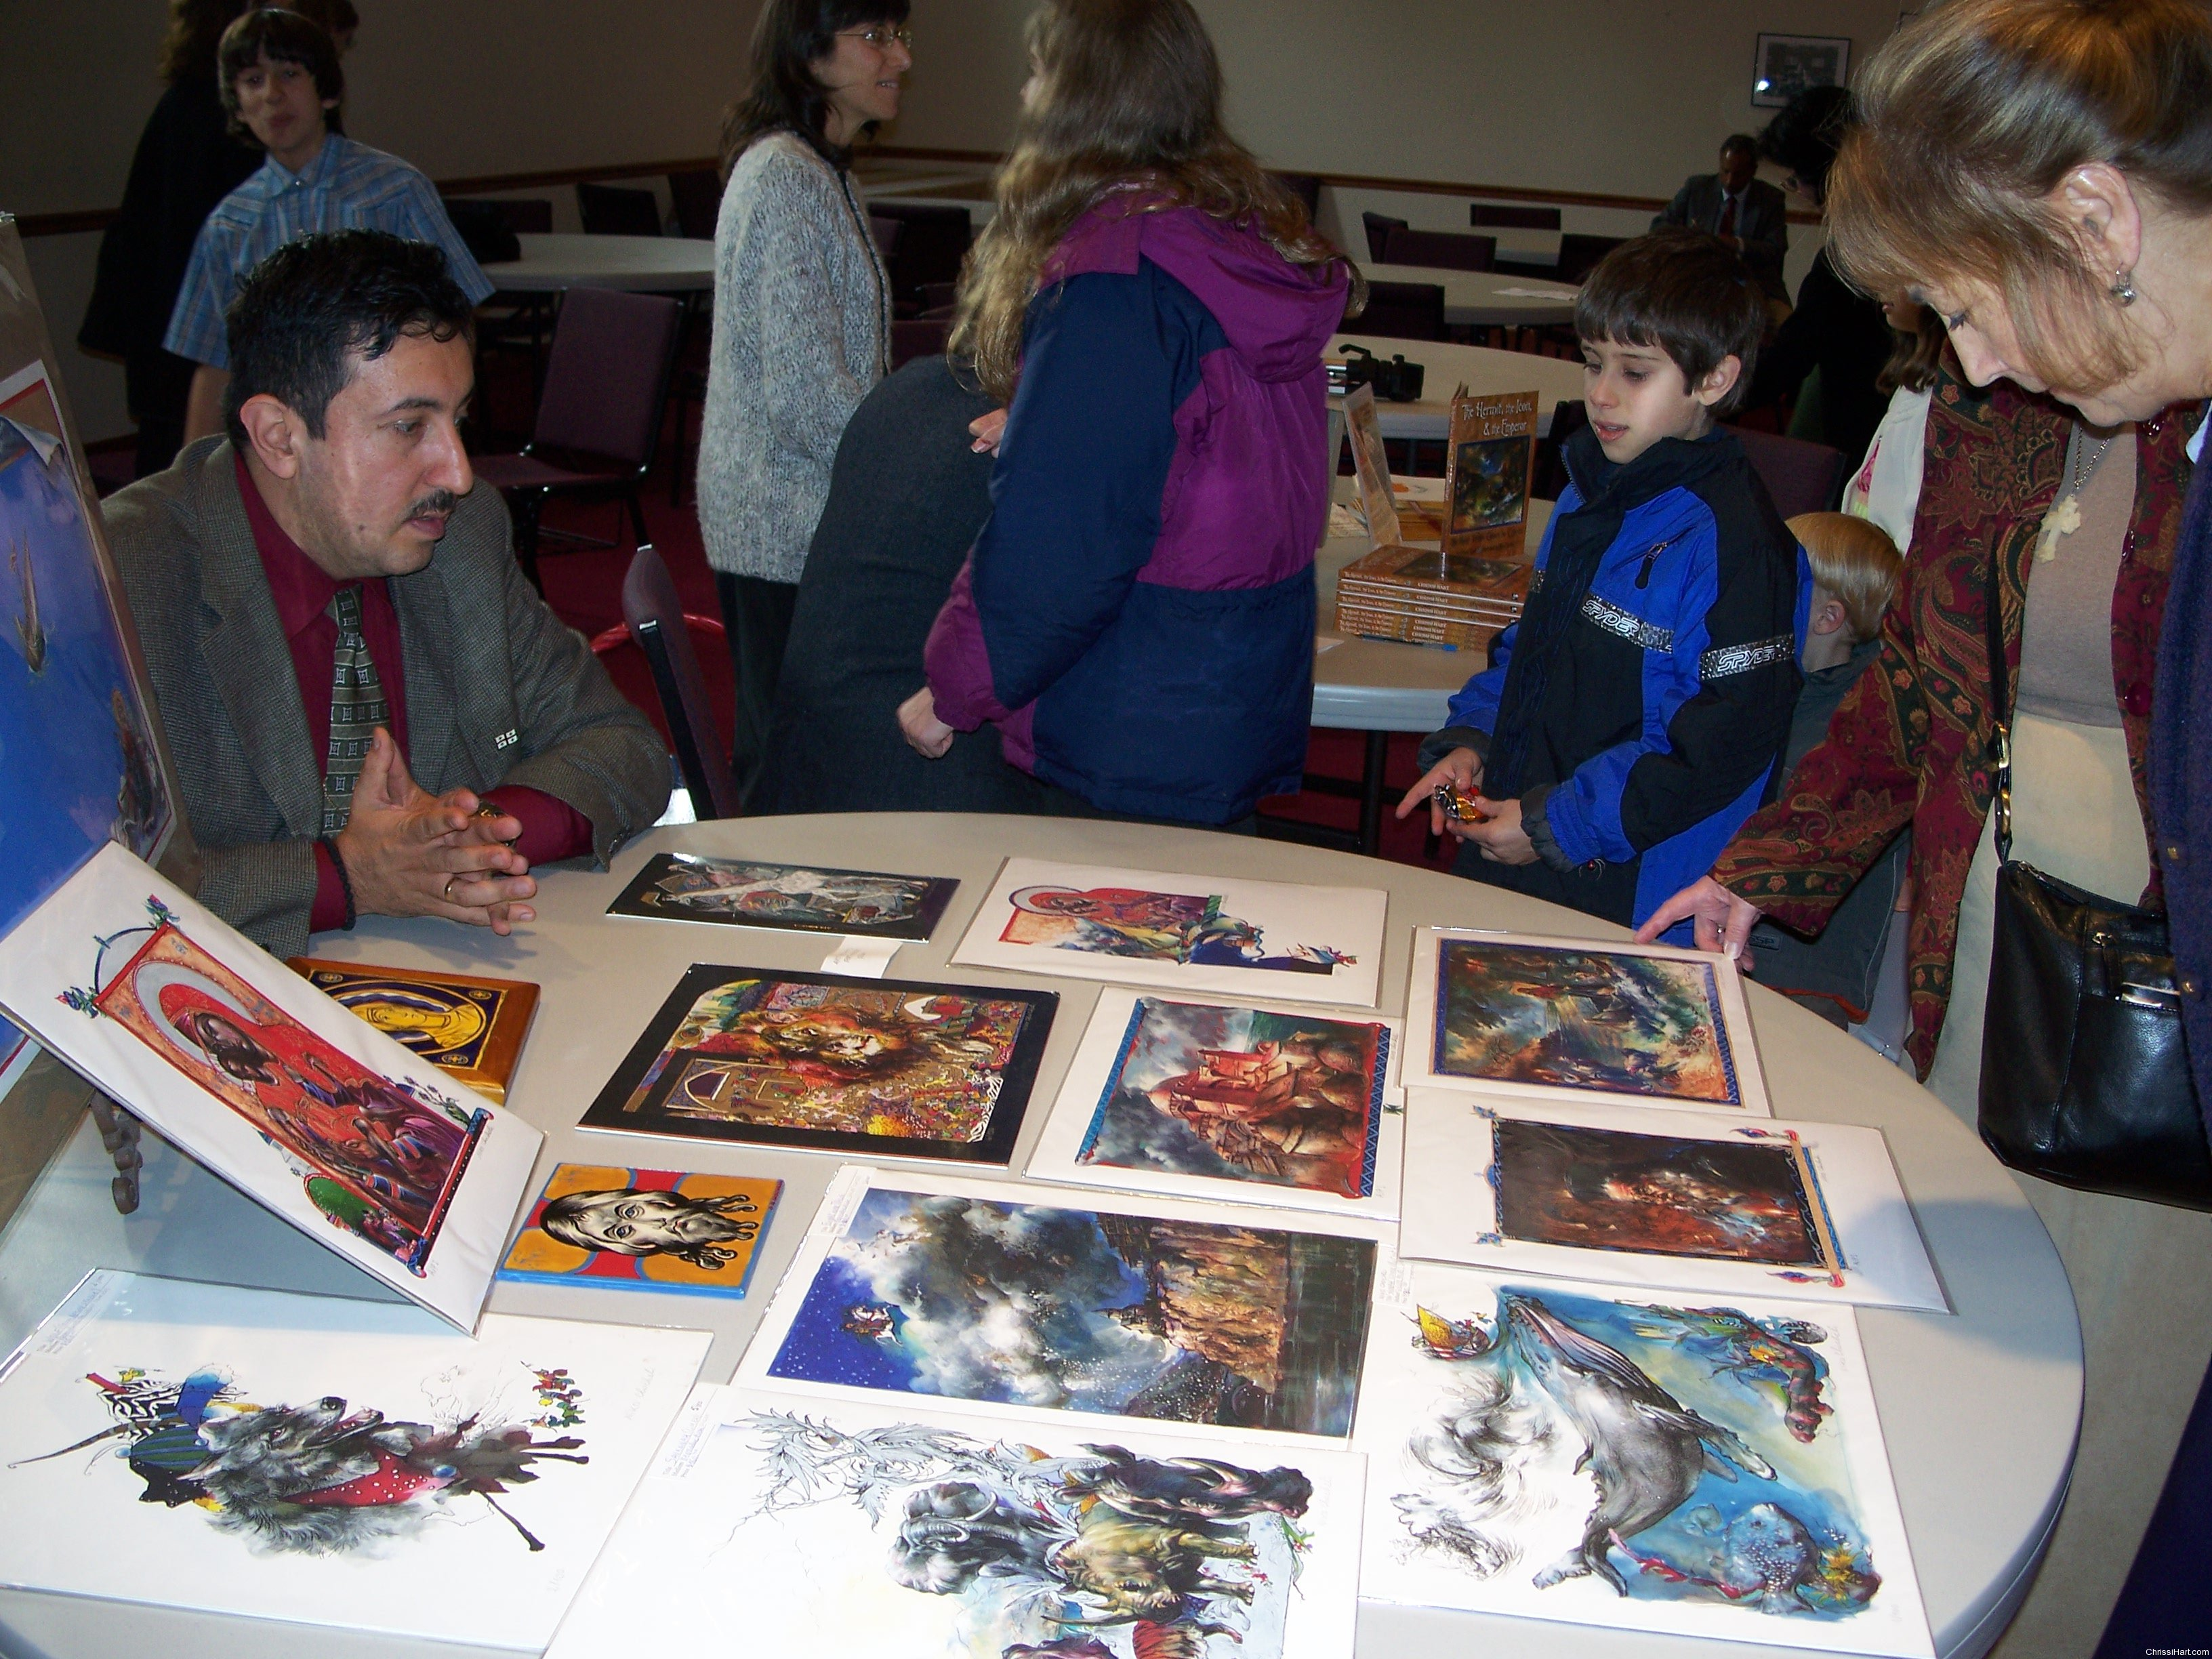 looking at limited edition prints